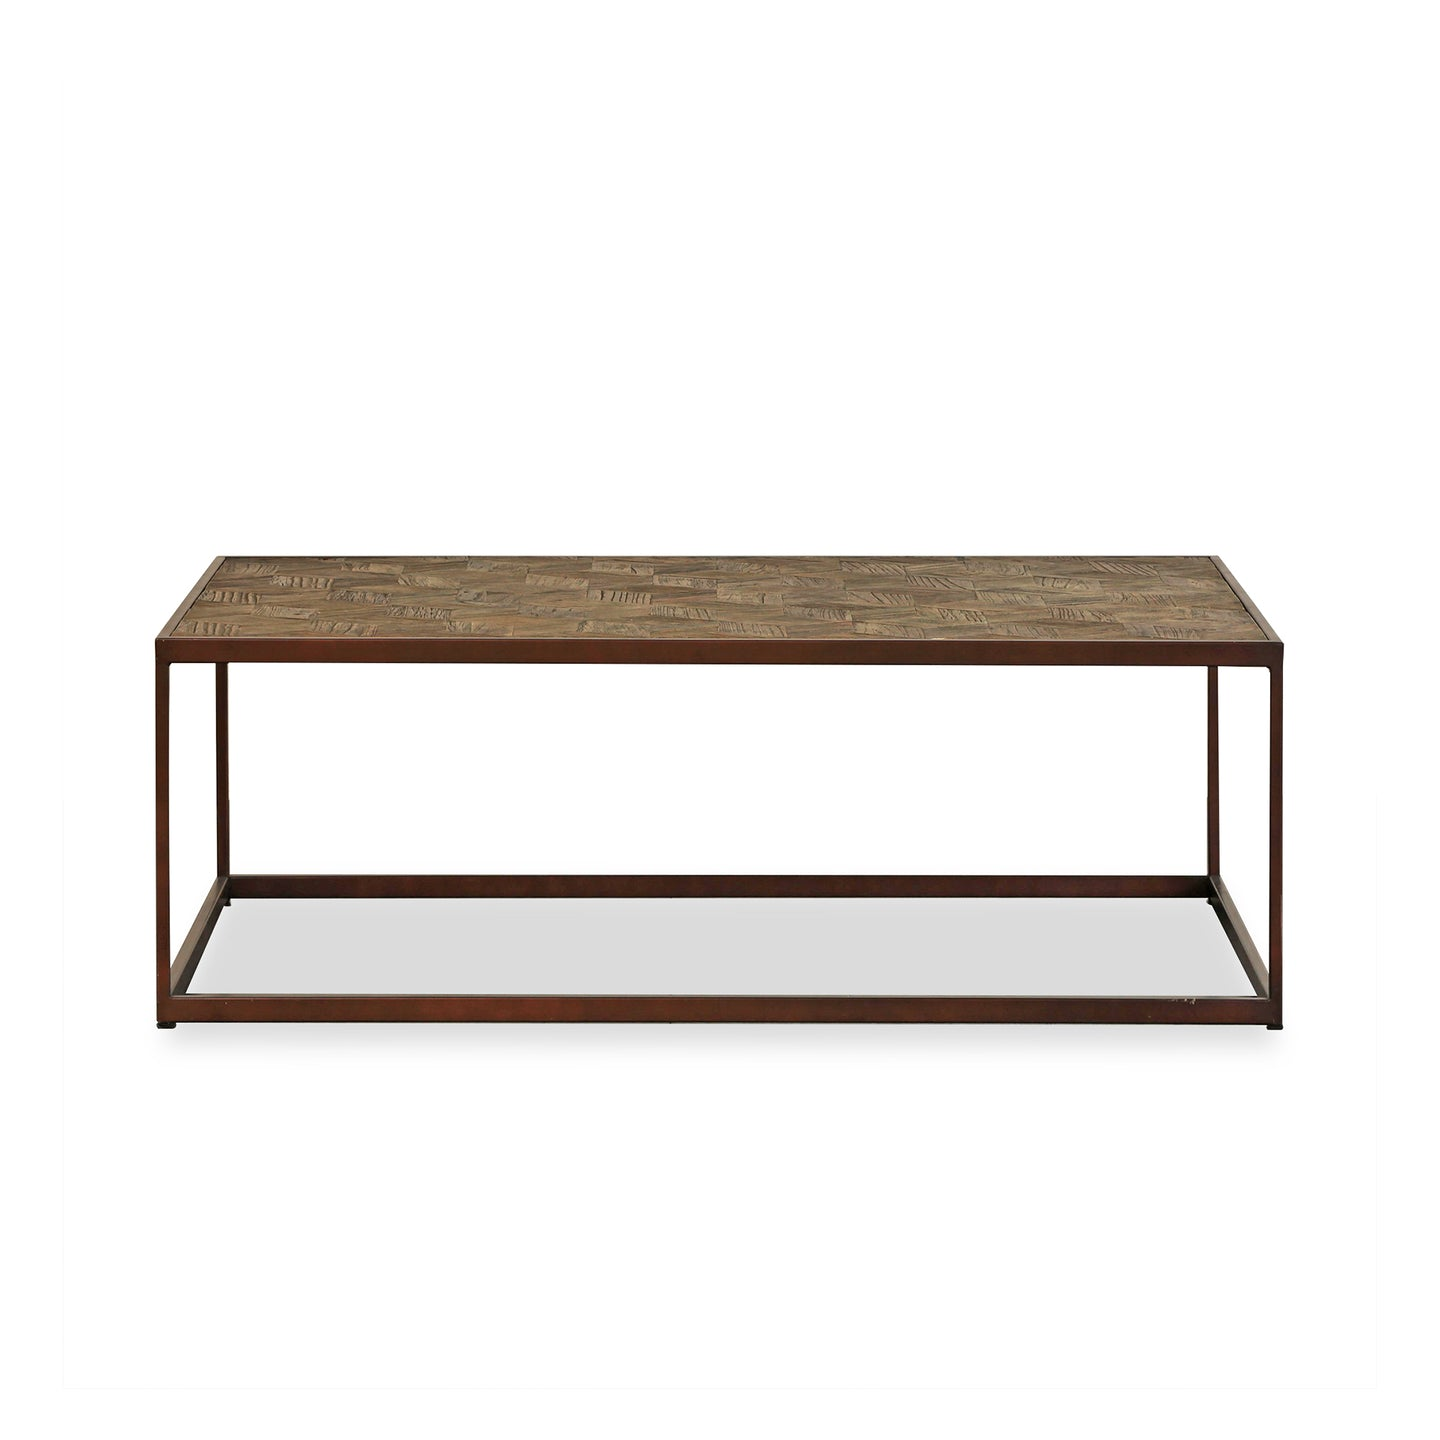 WEST COFFEE TABLE